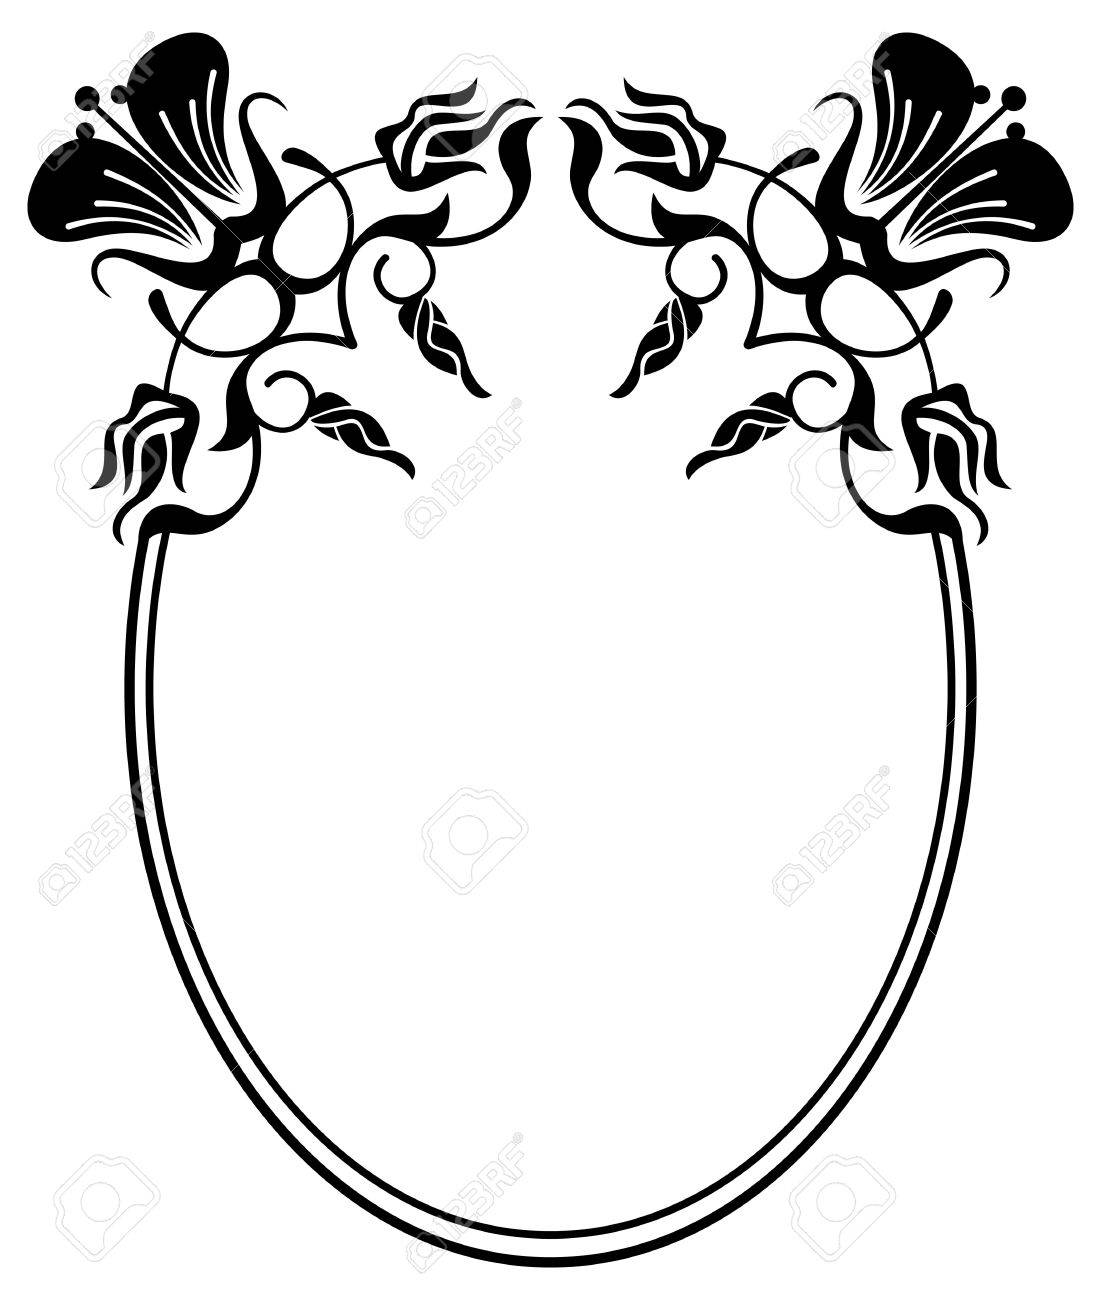 Beautiful Silhouette Frame Simple Black And White Oval With Abstract FlowersVector Clip